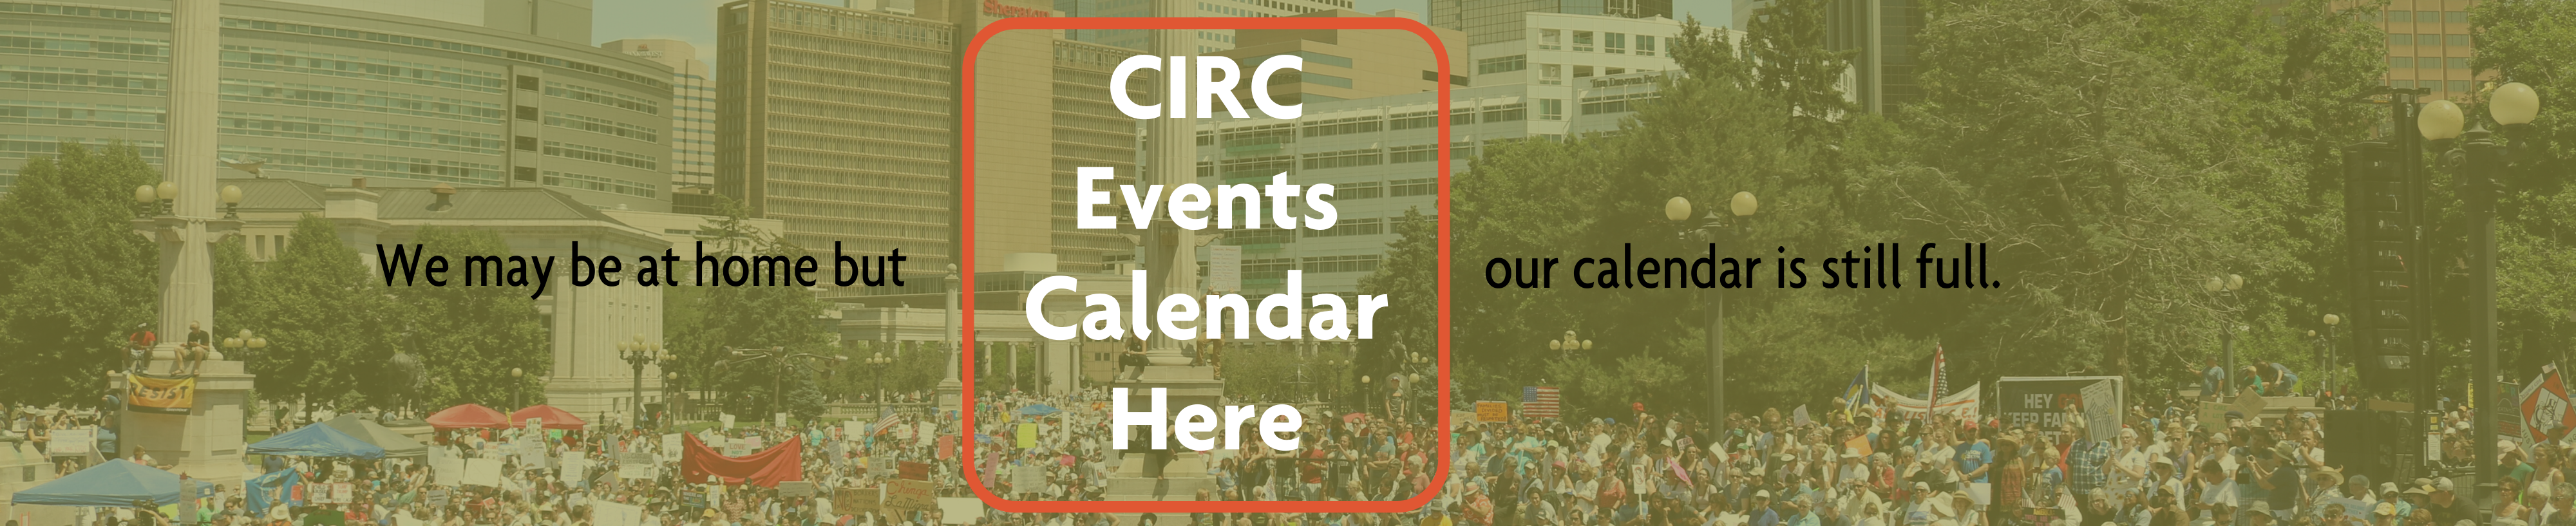 CIRC Events Calendar image